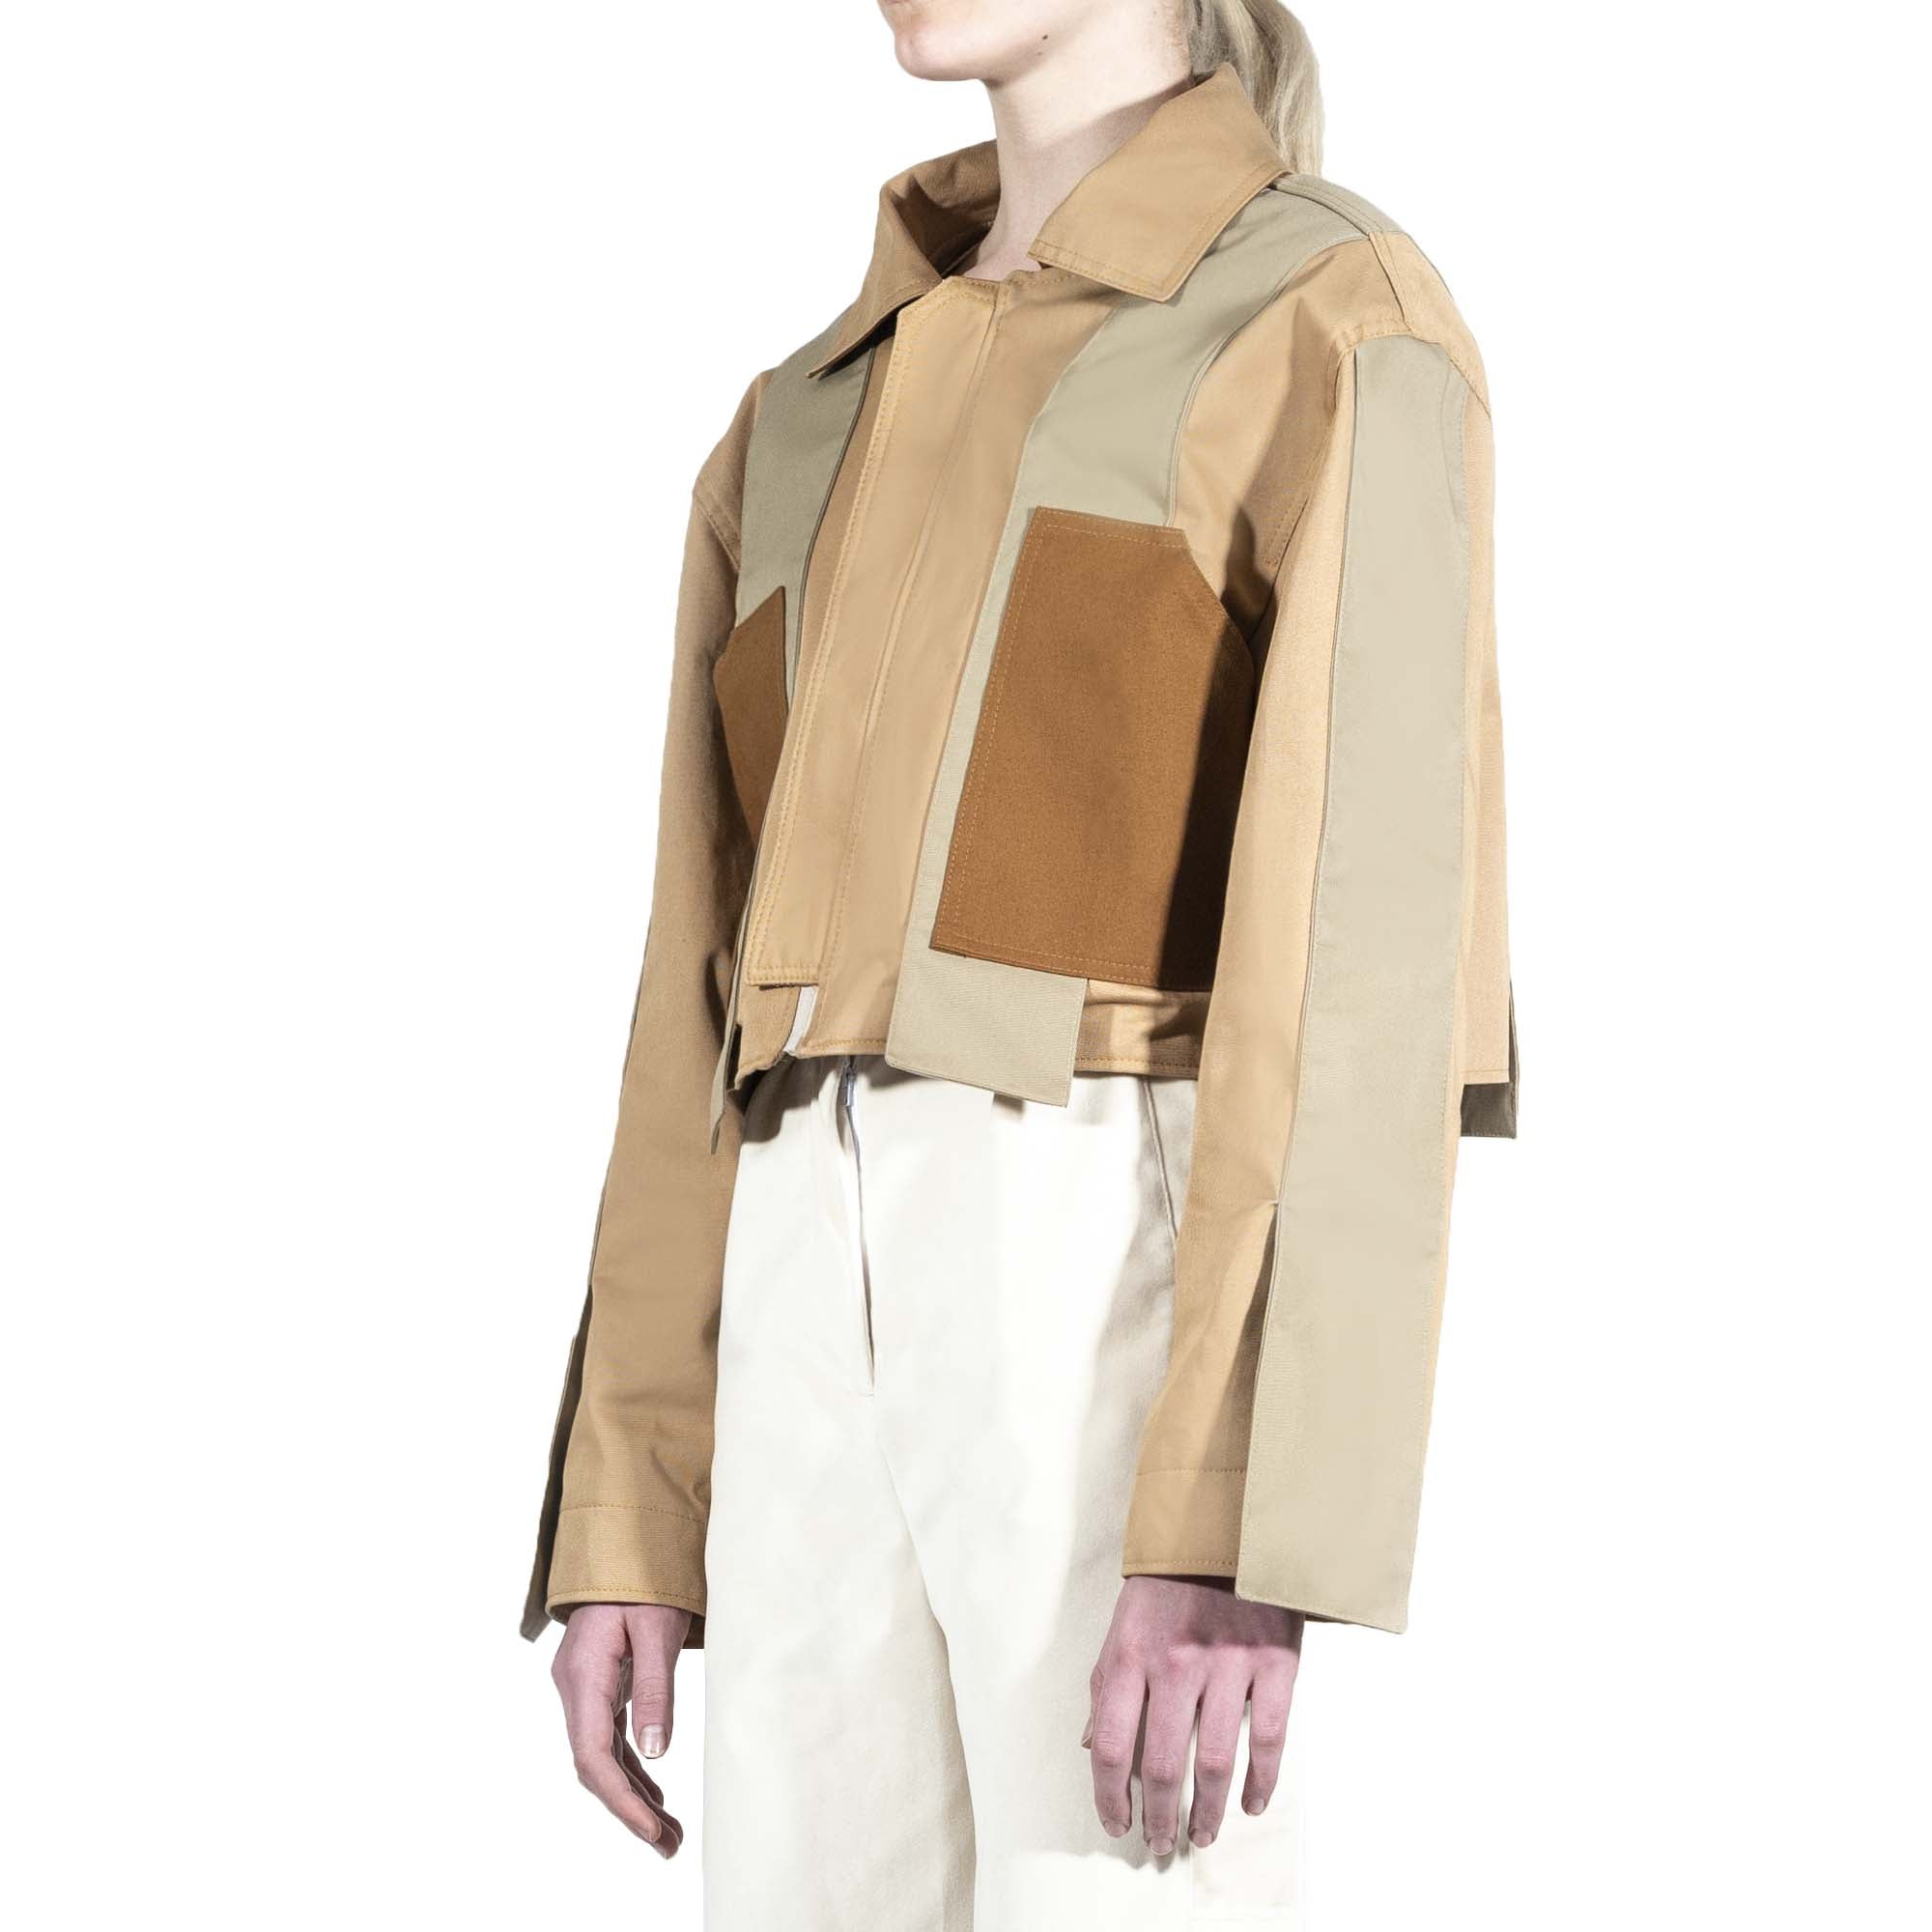 Short Layered Aviator Jacket